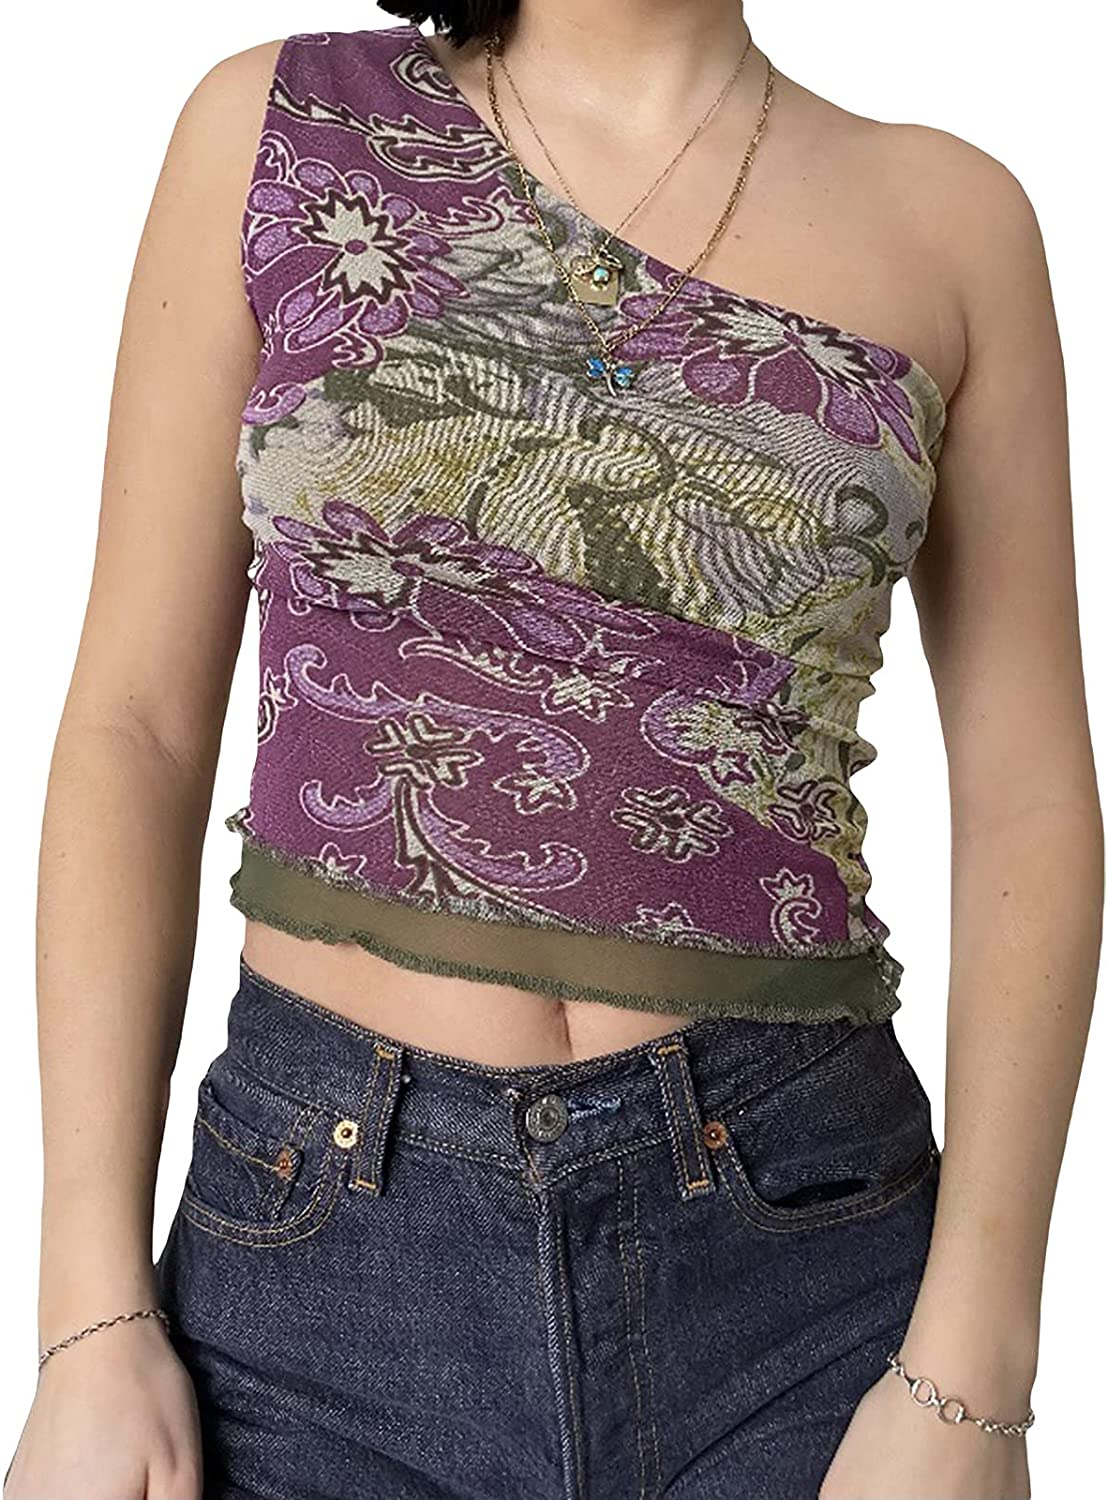 Crop Tops for Women Y2K Sexy One Shoulder Sleeveless Vest Basic Slim Bodycon Tees Fashion Exposed Navel Tops (Purple, Large)